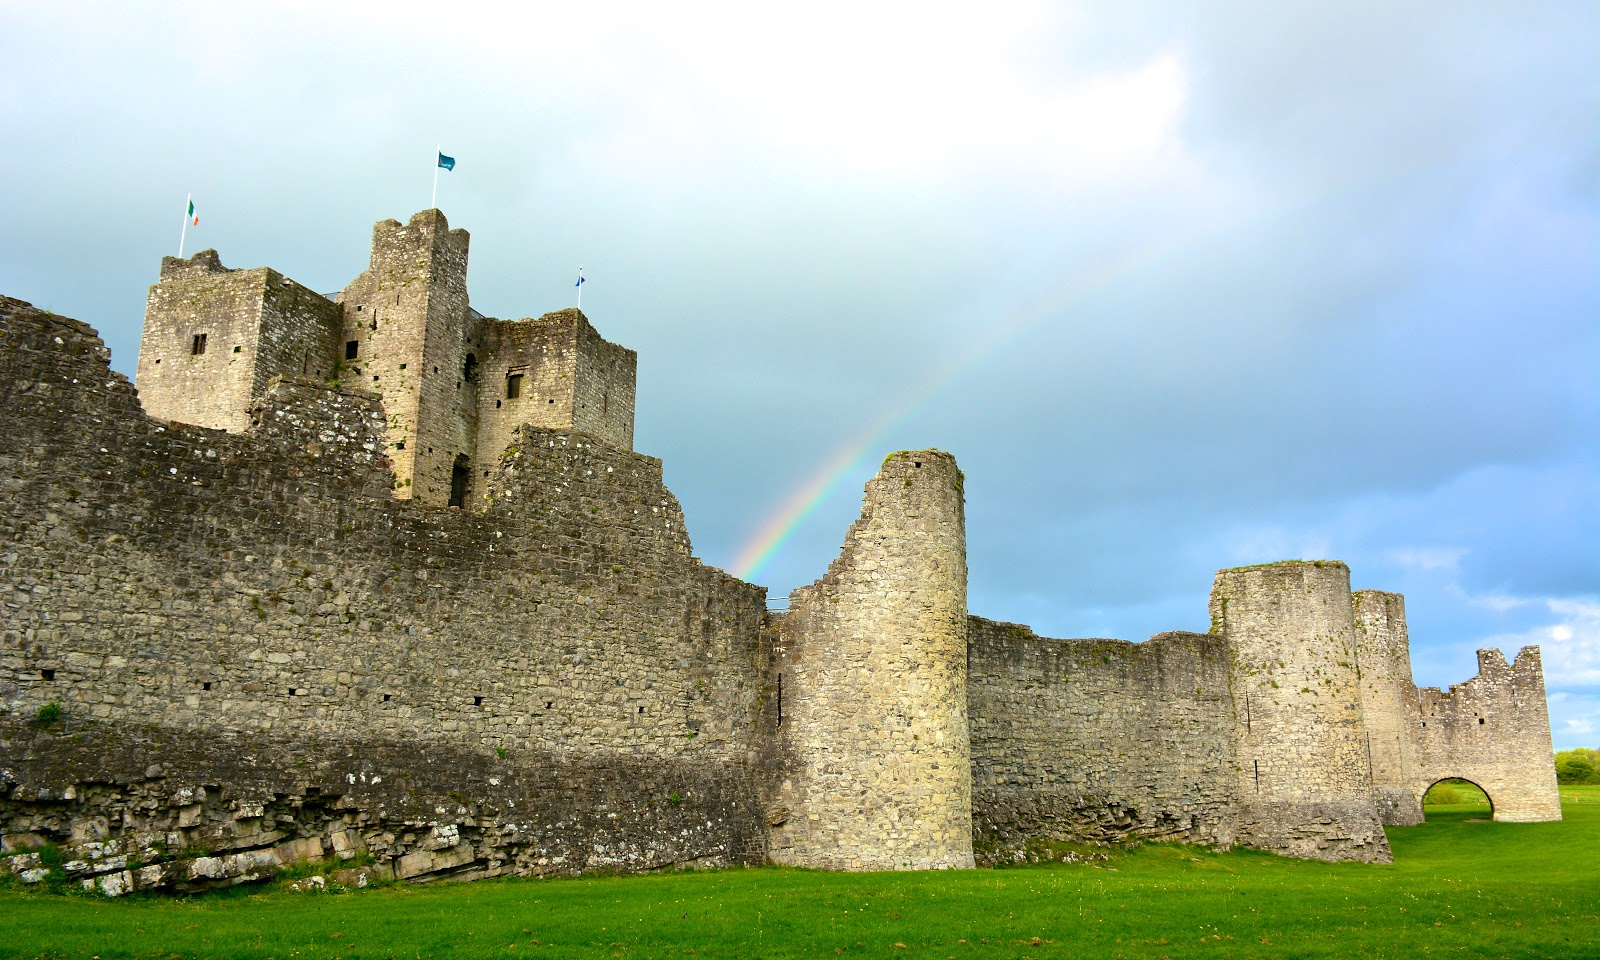 Rainbow leads into Castle Train, Ireland